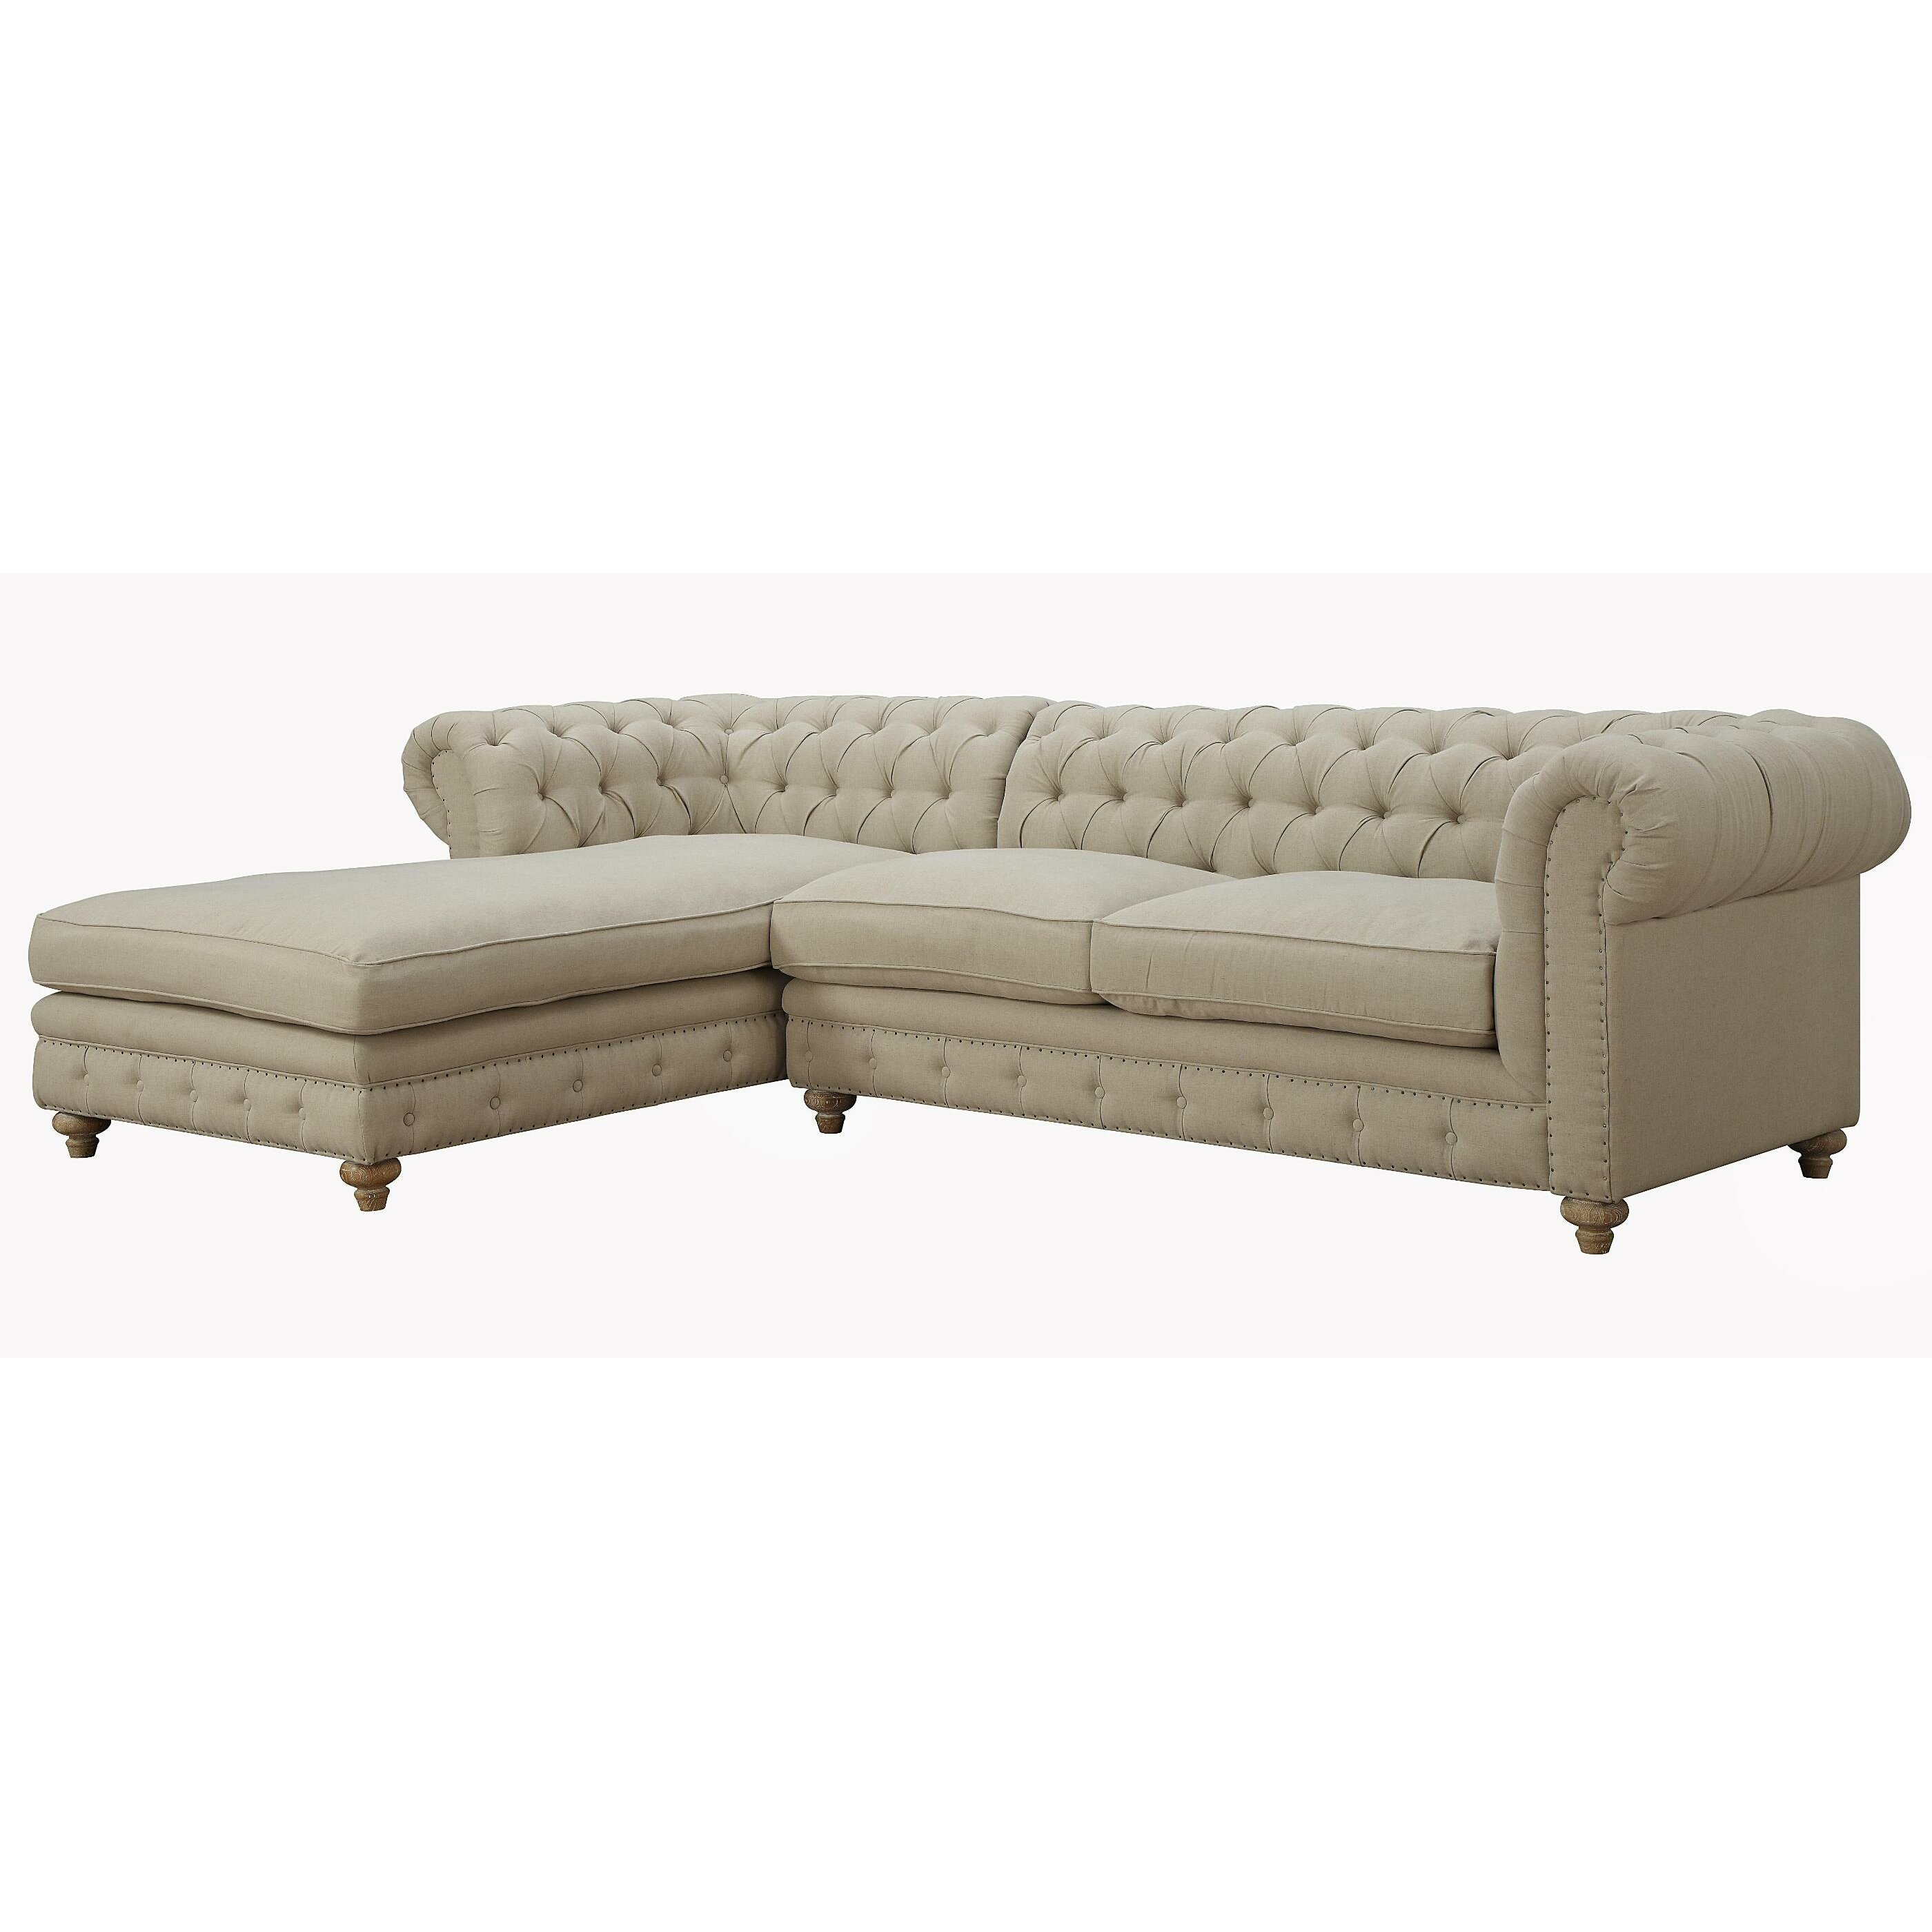 Avery 111 Sectional Reviews Joss Main Joss And Main Sectional Sofa